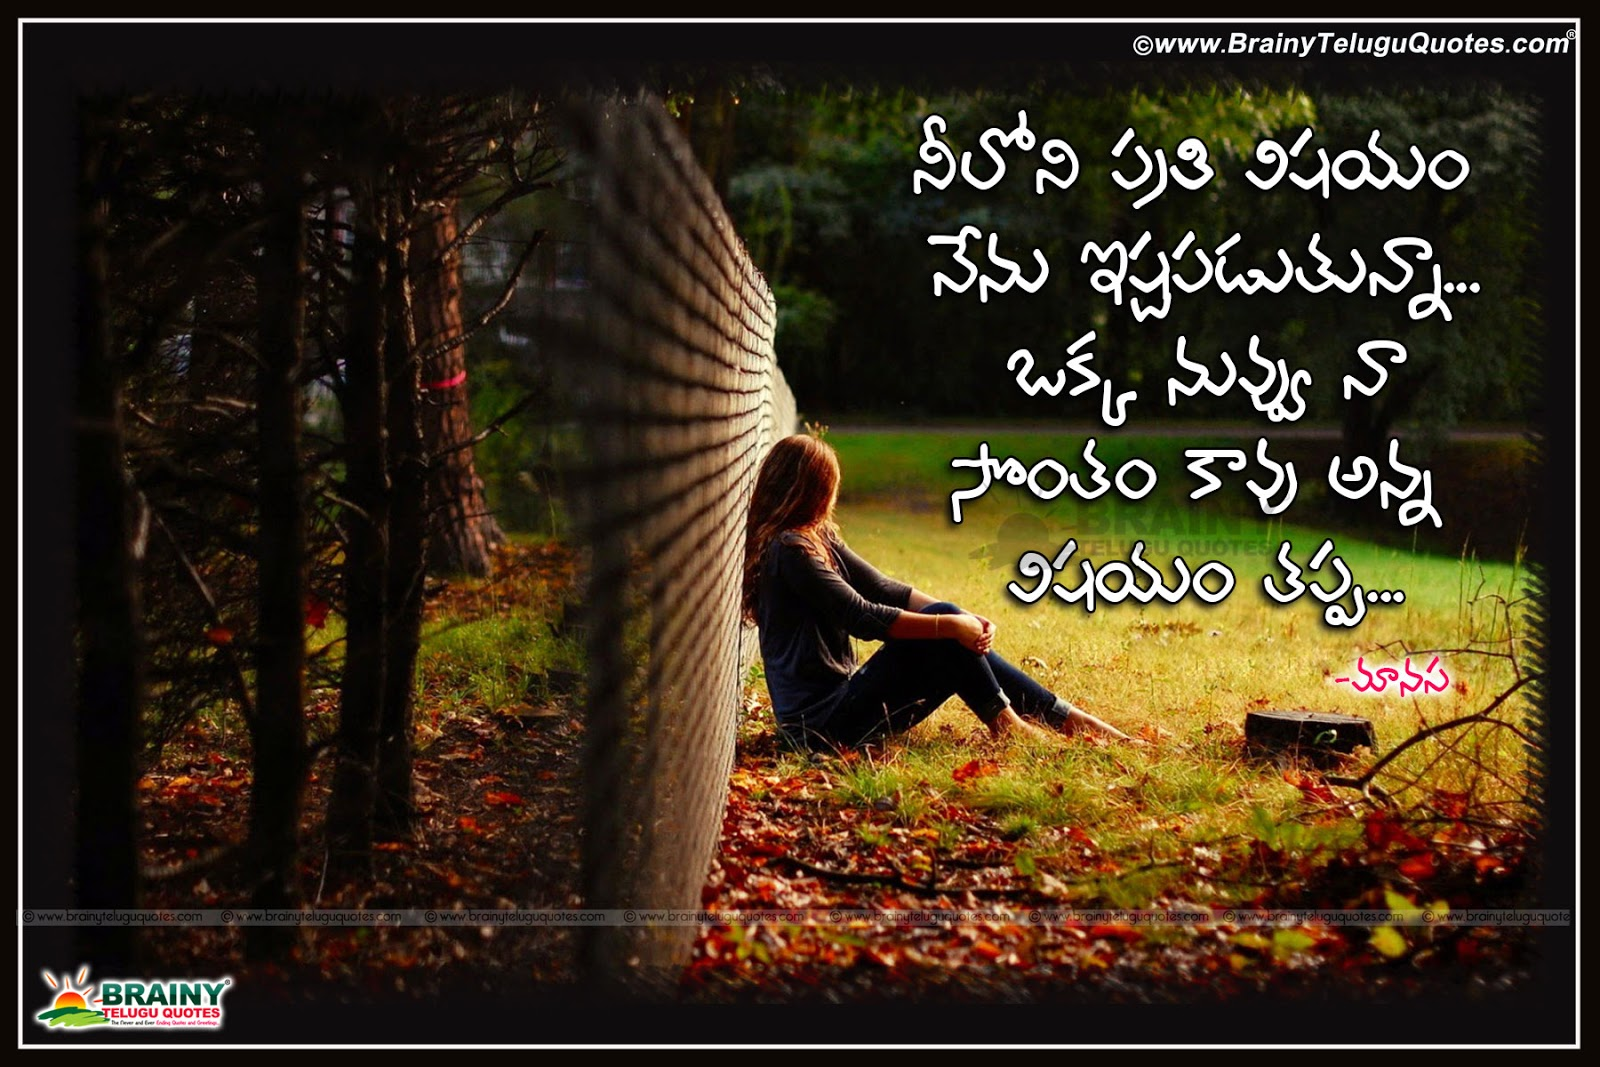 telugu love failure quotes for whatsapp stautus messages